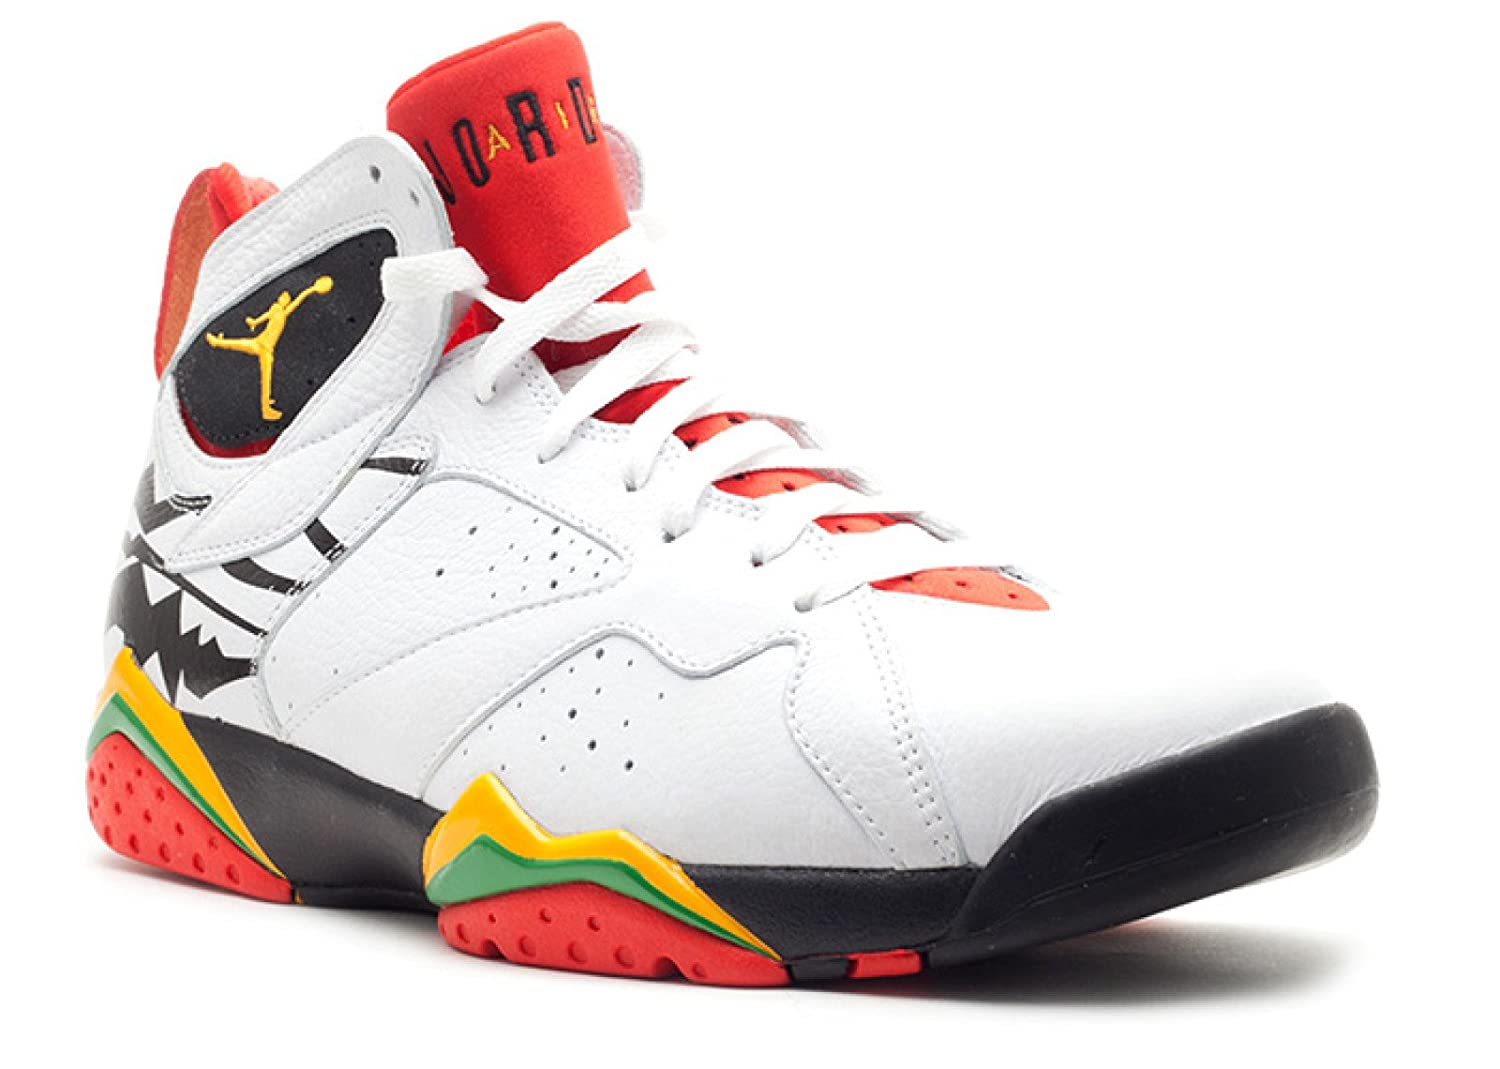 factory authentic 72200 2a00c Amazon.com | Nike Mens Air Jordan 7 Retro Premio Bin 23 ...